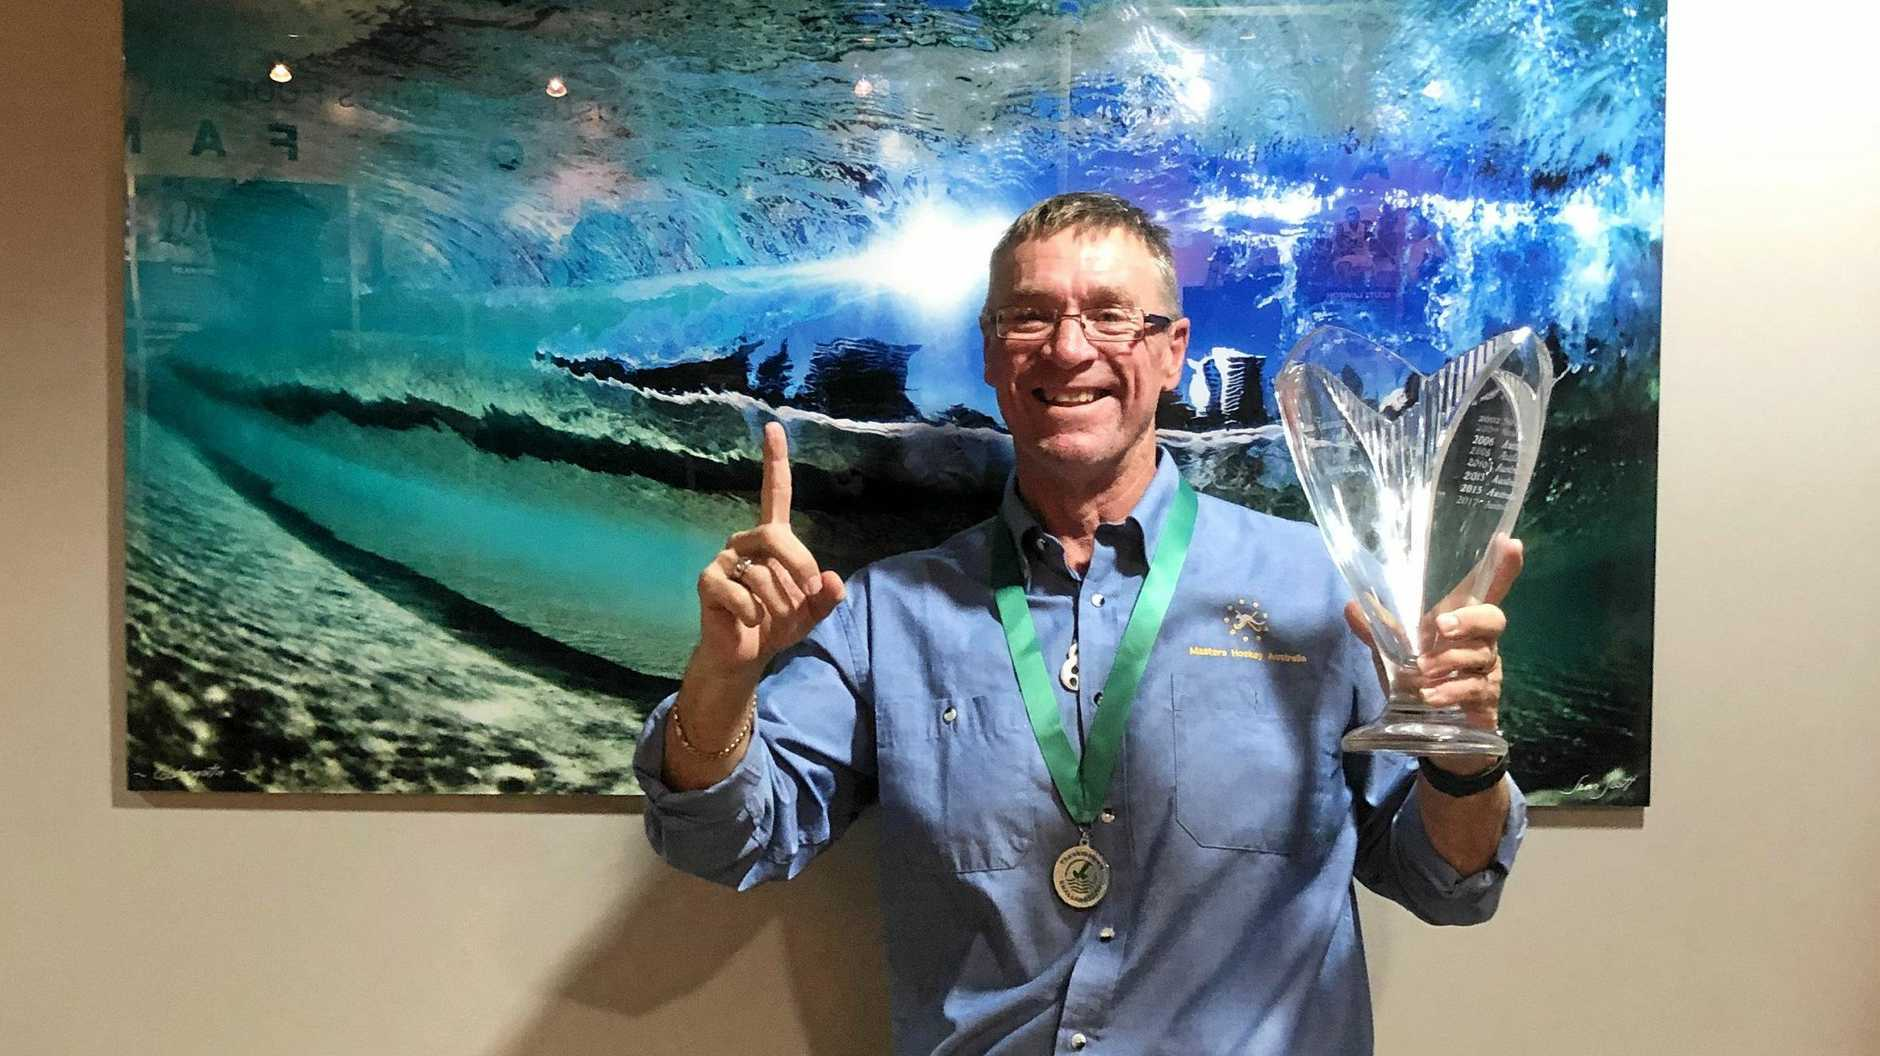 WE HAVE THE CUP: A proud Gary Porteous with the Trans Tasman Trophy. INSET: The victorious Australian over-45s team.